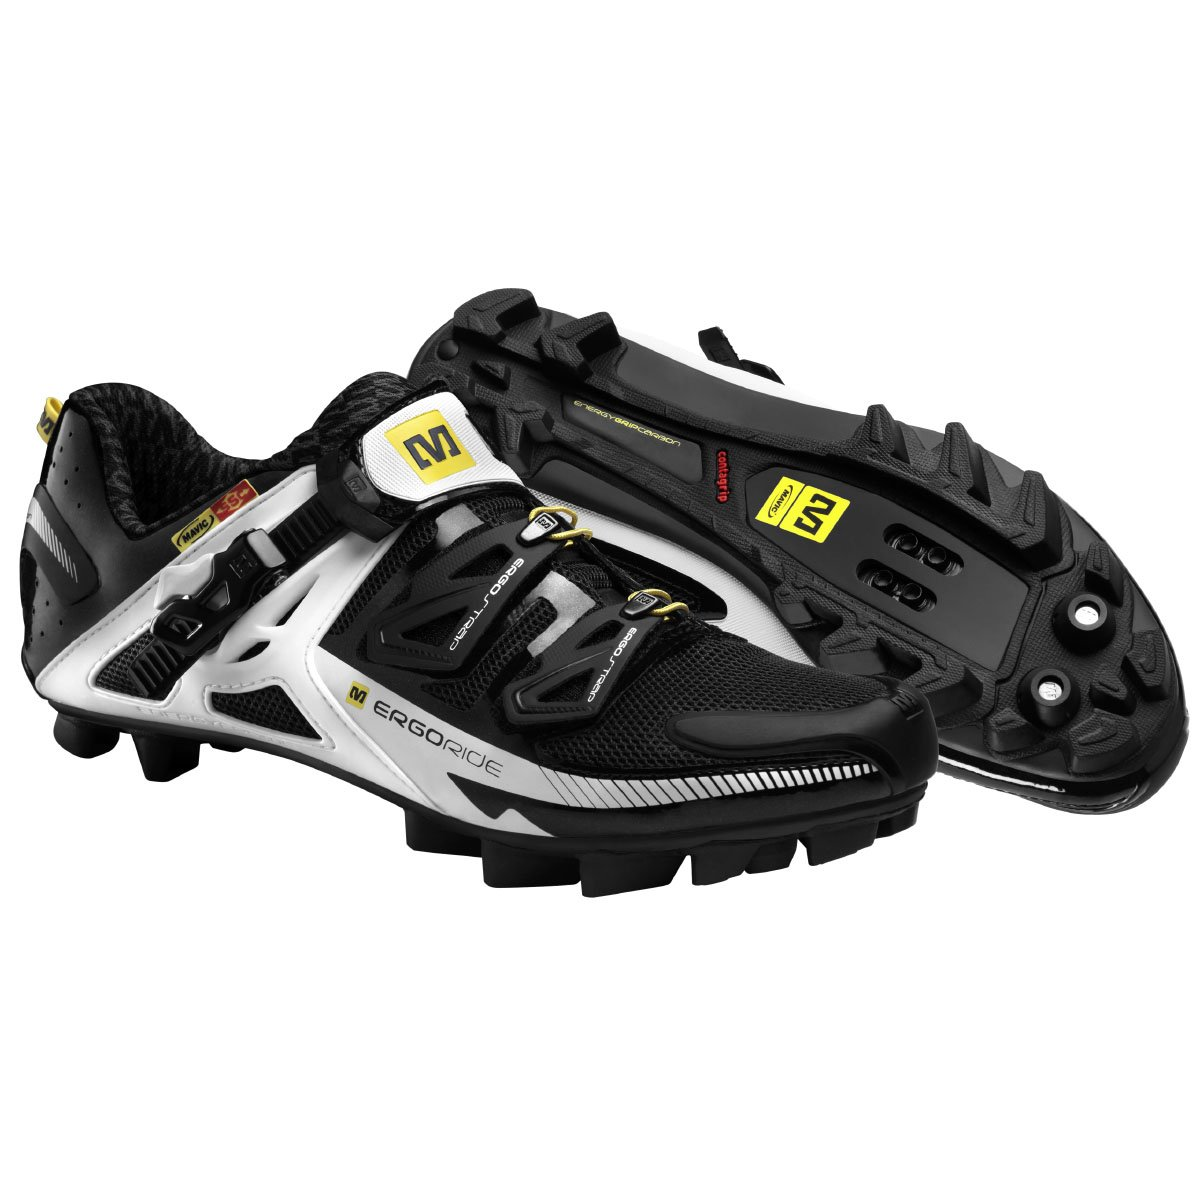 Venzo Boa Road Shoes Review